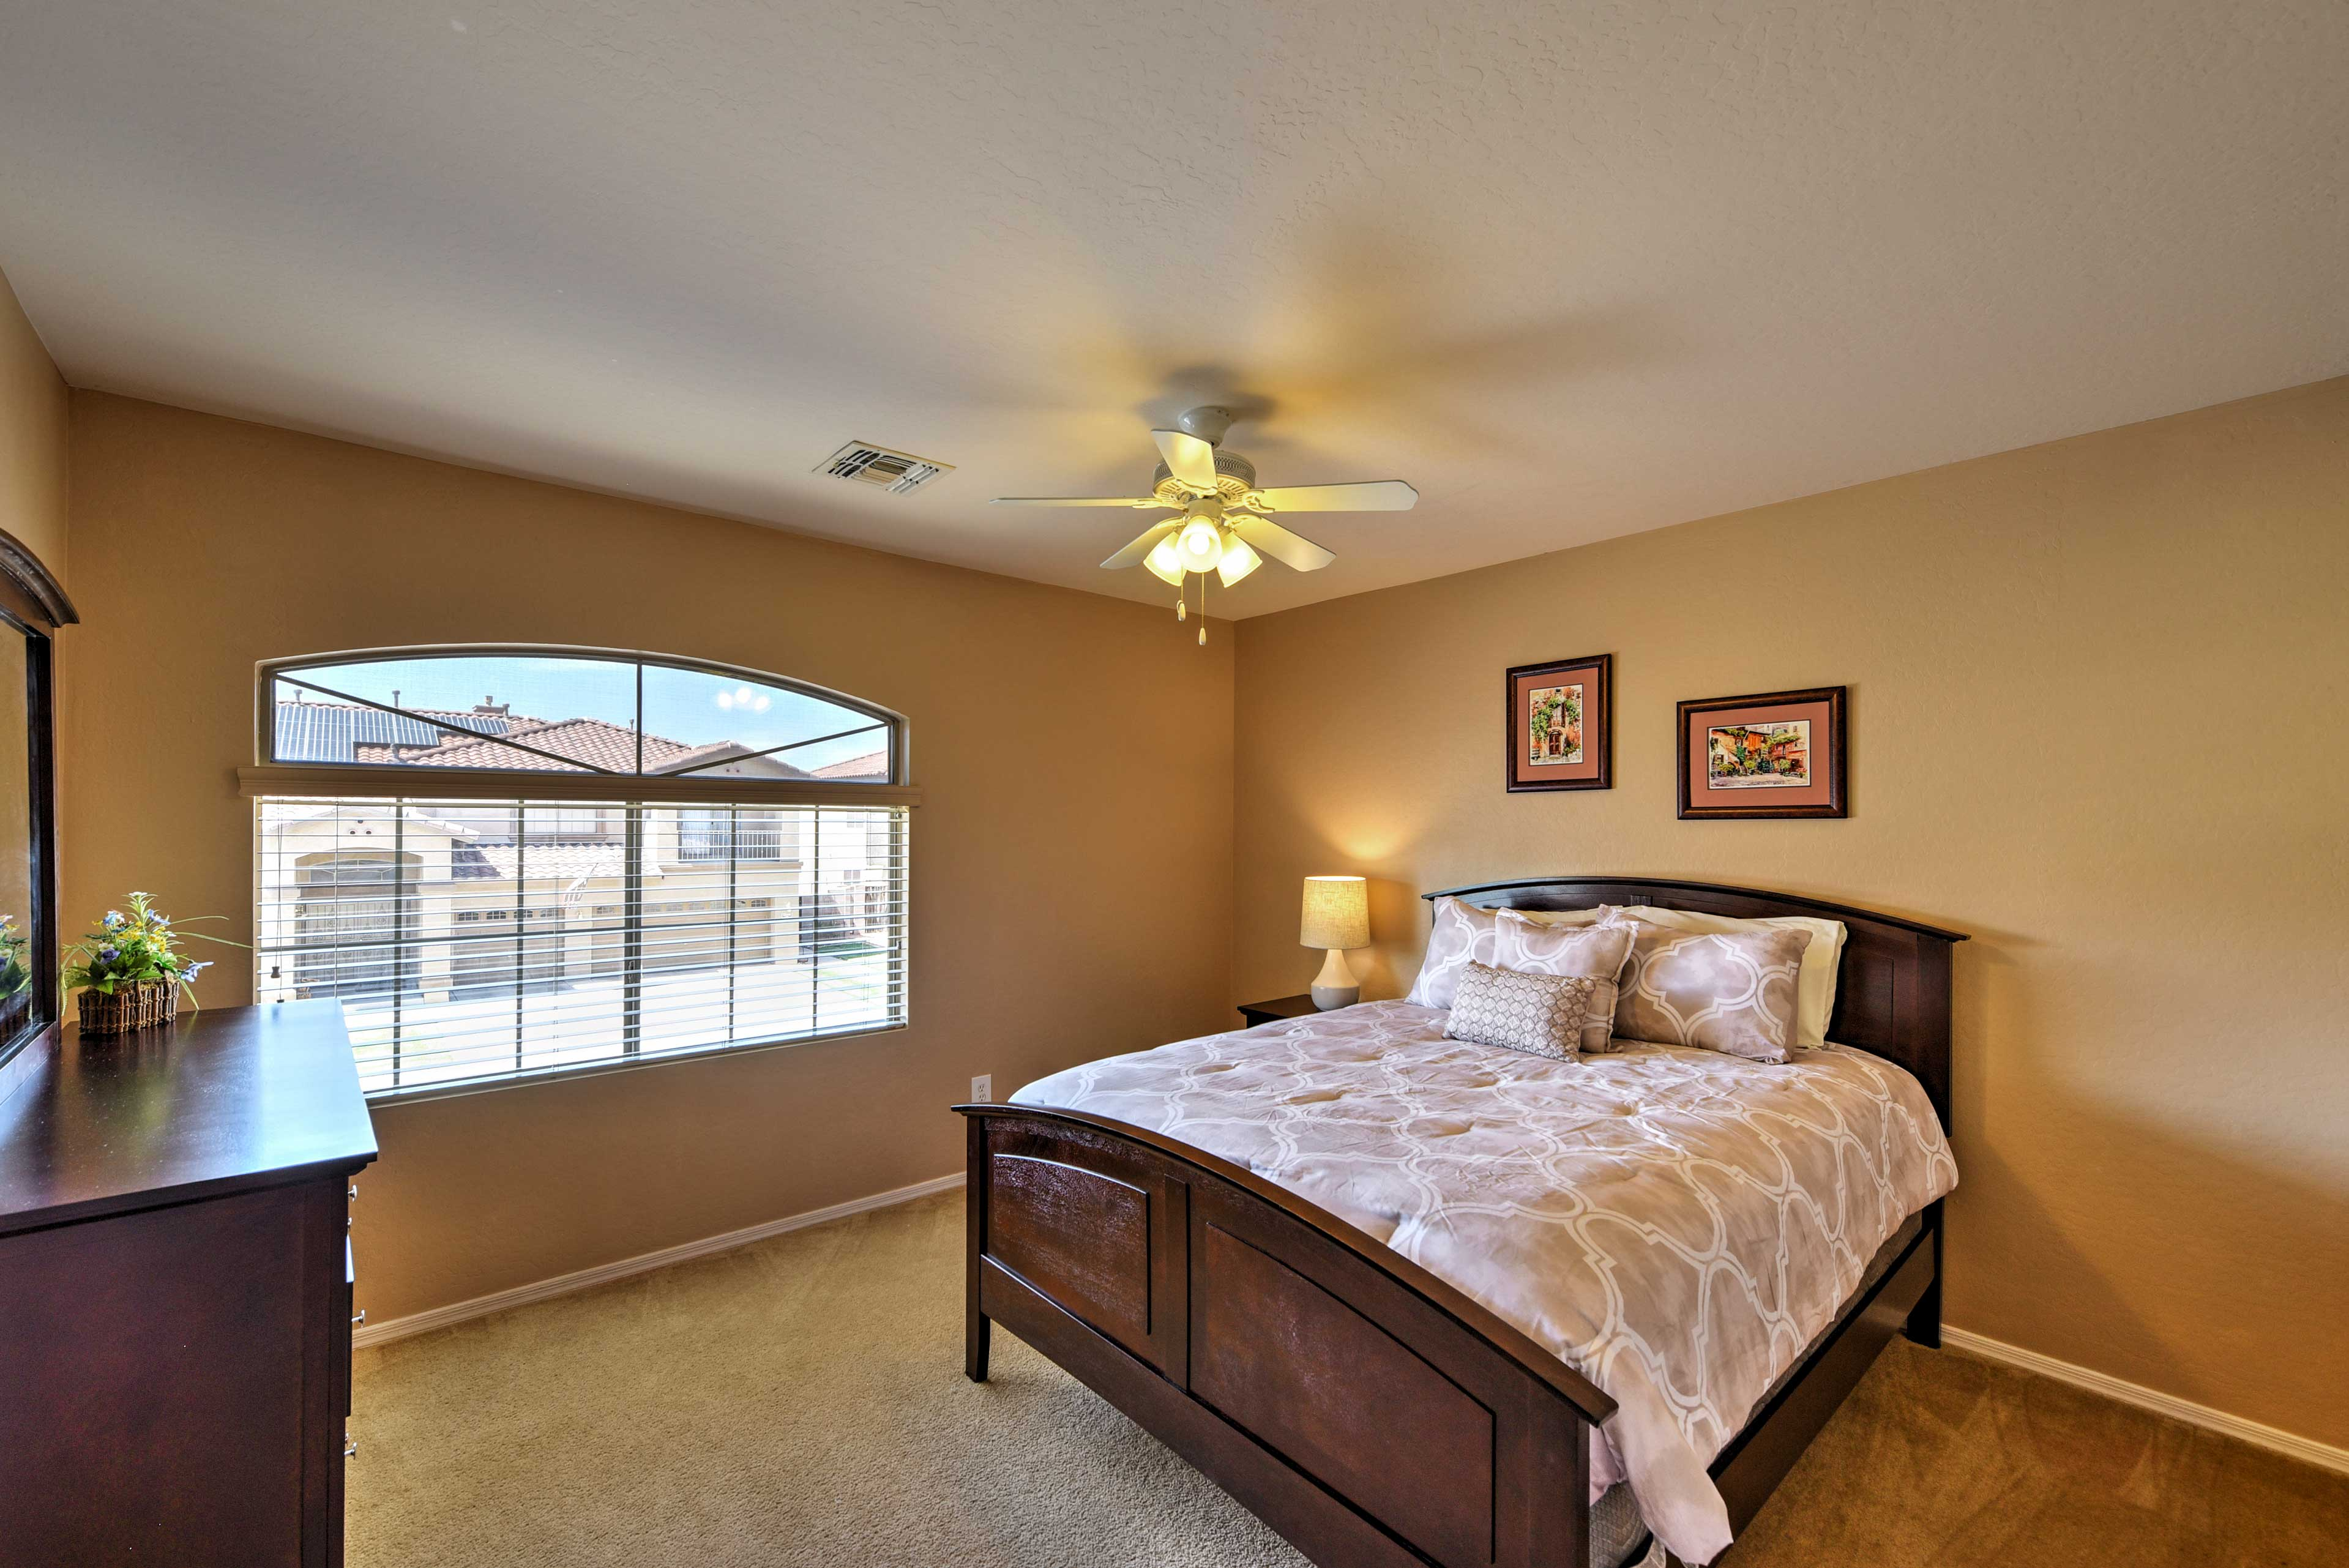 The fourth bedroom also has a queen bed.